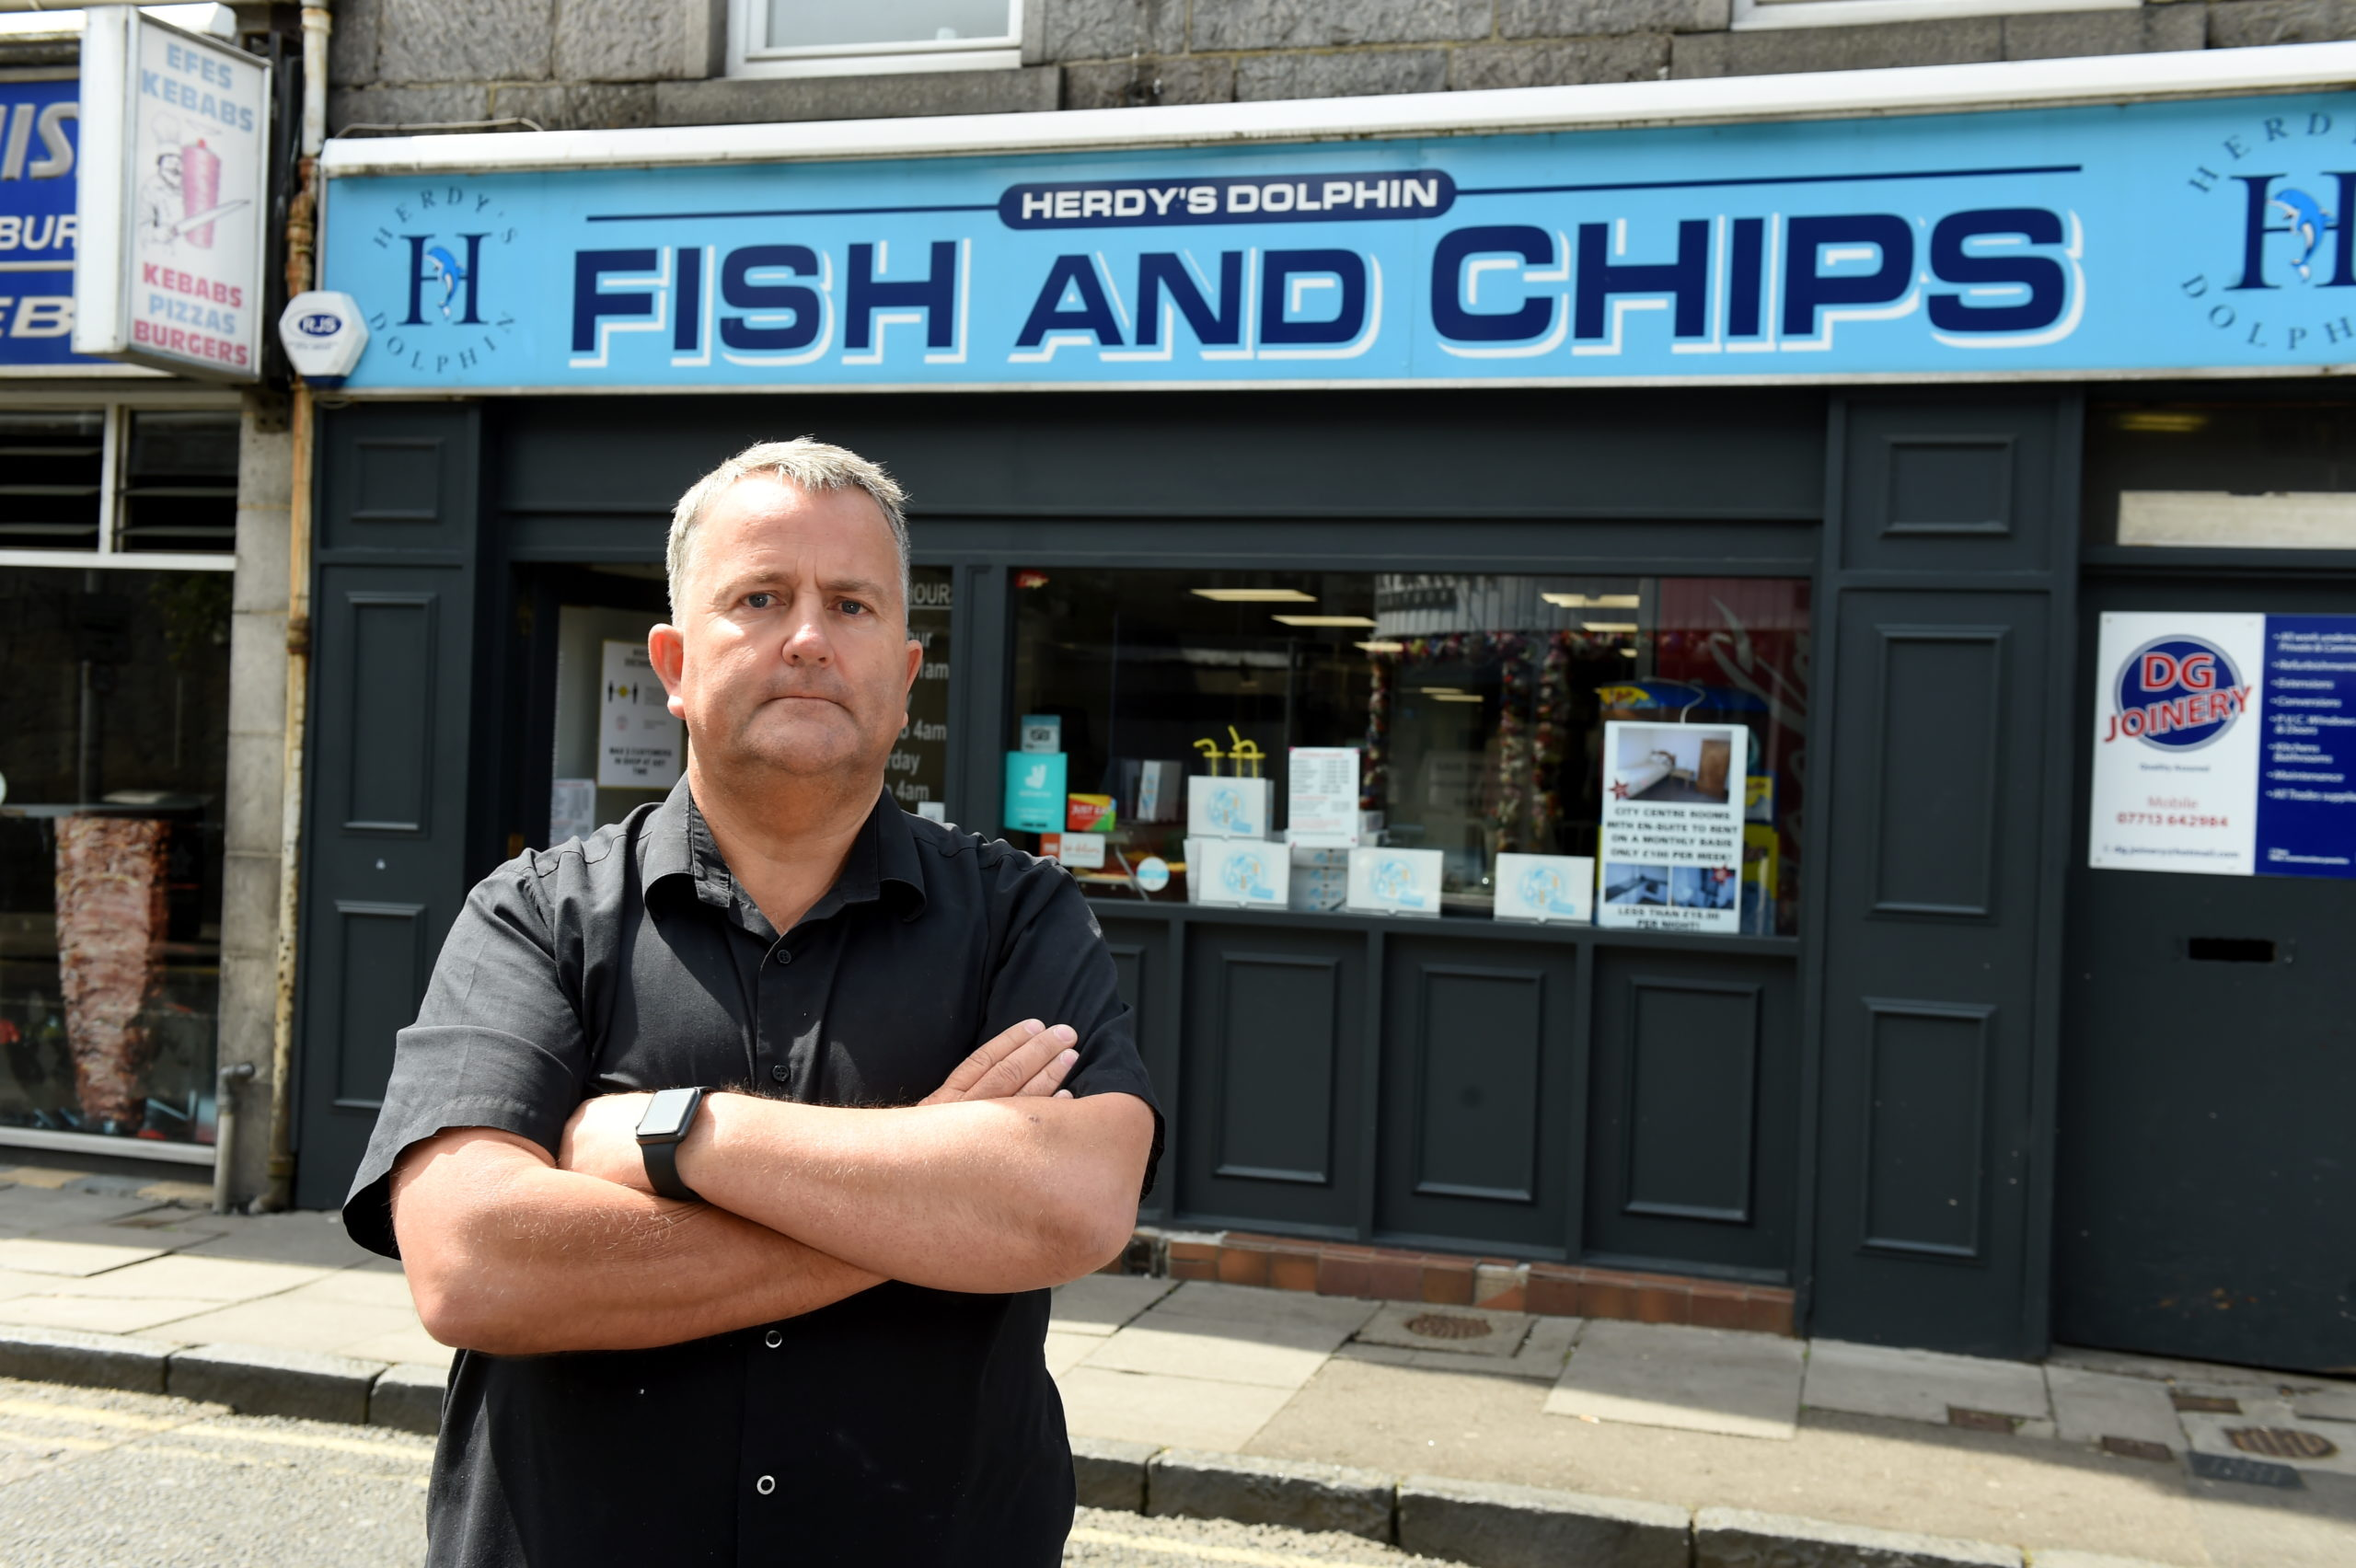 Graeme Herd outside Dolphin Fish and Chips on Chapel Street